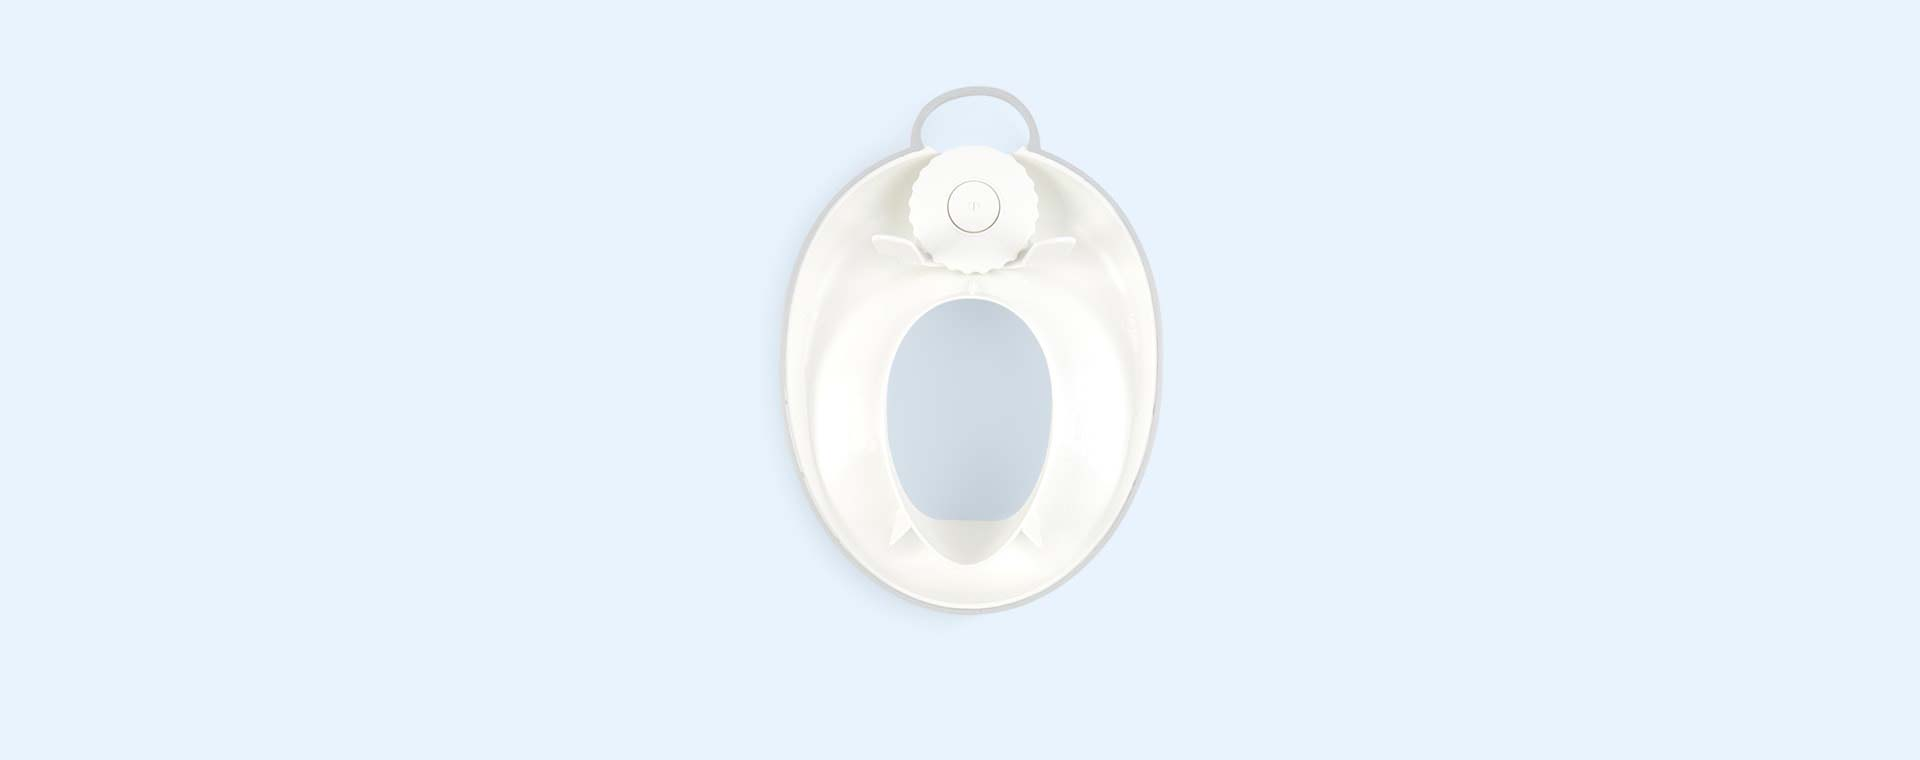 Grey BabyBjorn Toilet Training Seat